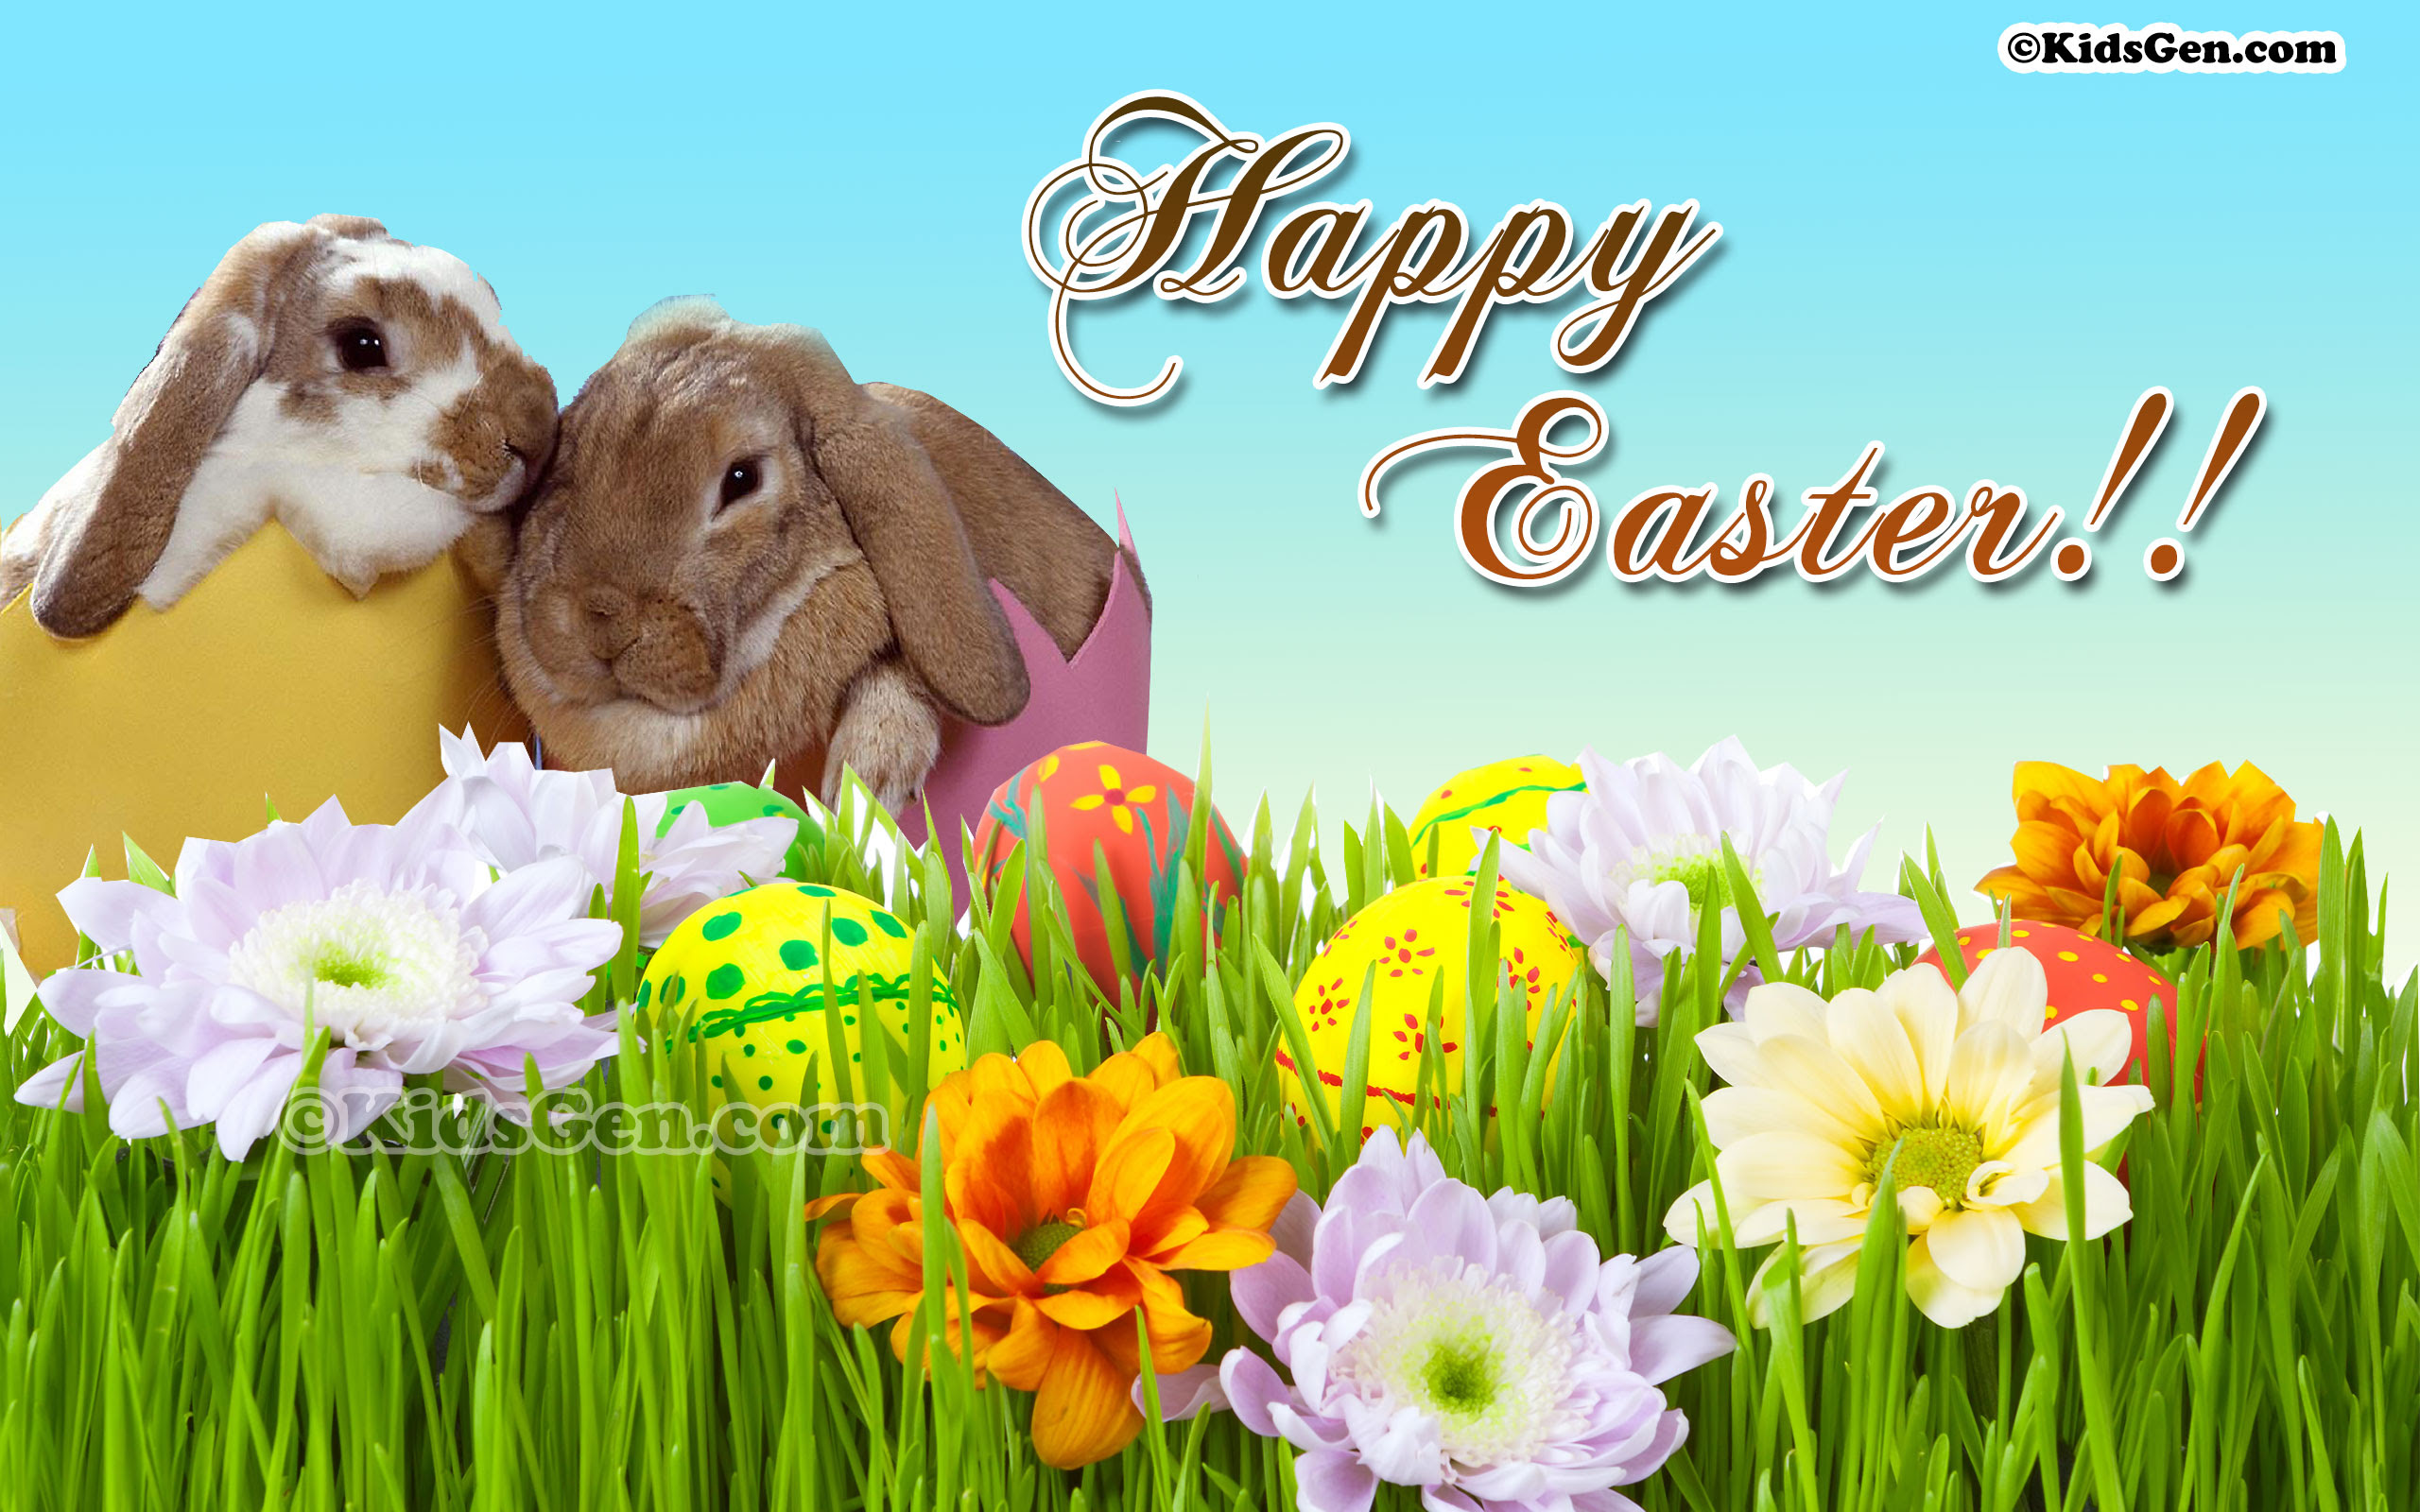 12 HD Easter Wallpapers for Kids